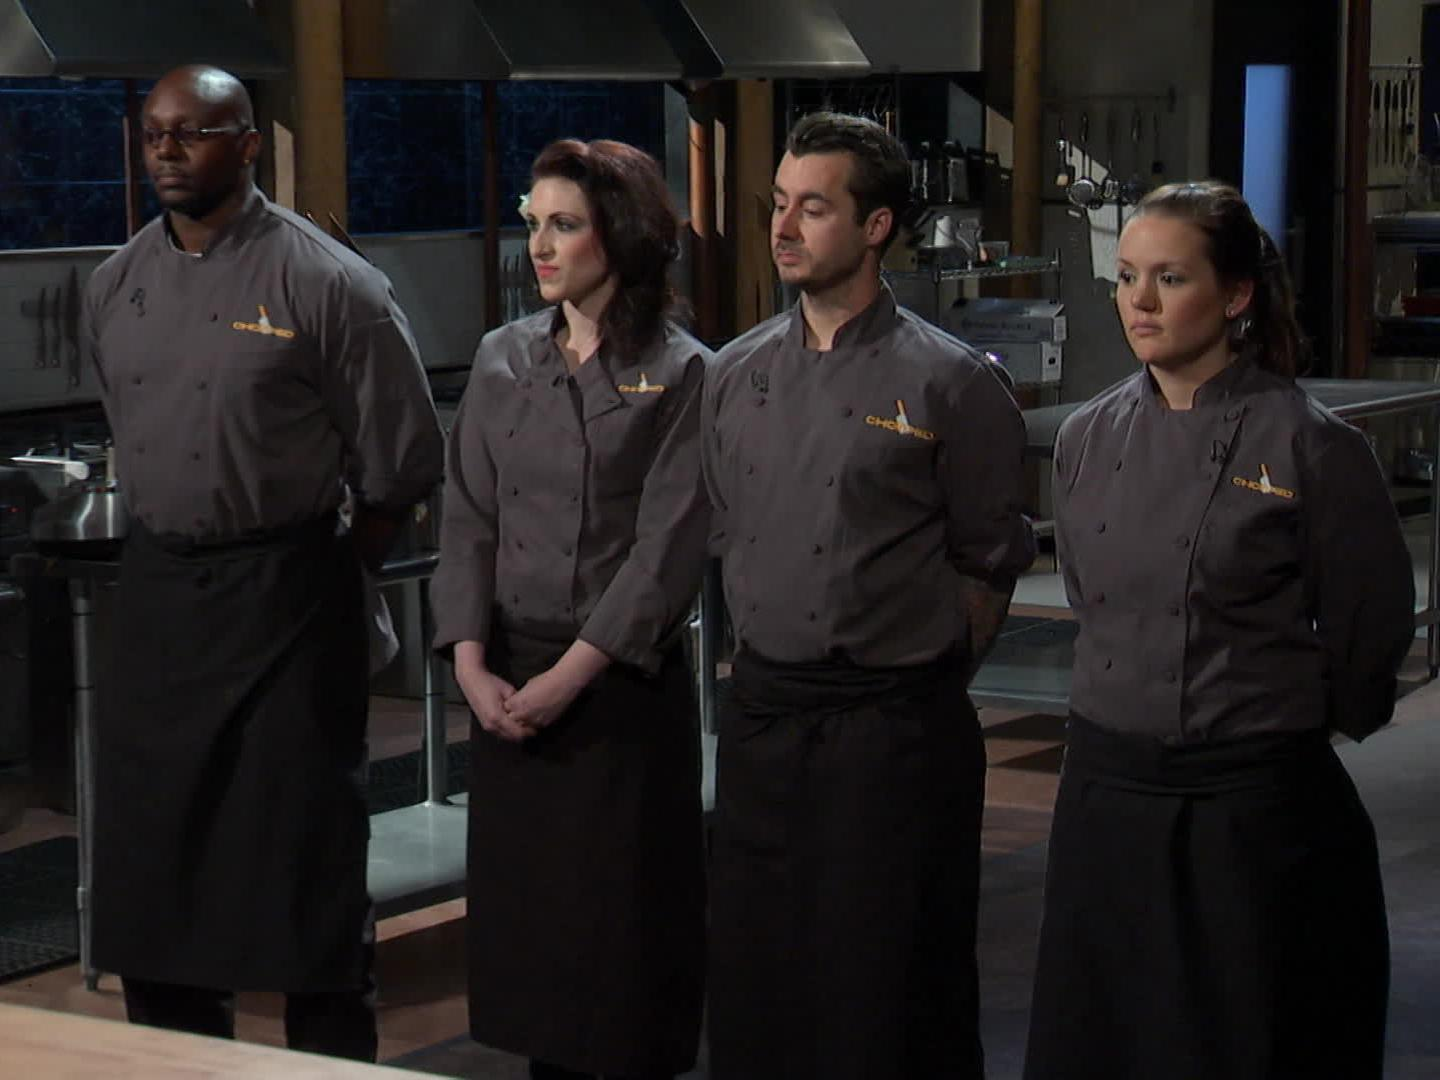 Four chefs cook with chocolate in every round on #Chopped next at 11|10c! https://t.co/WubTX5F6Gr